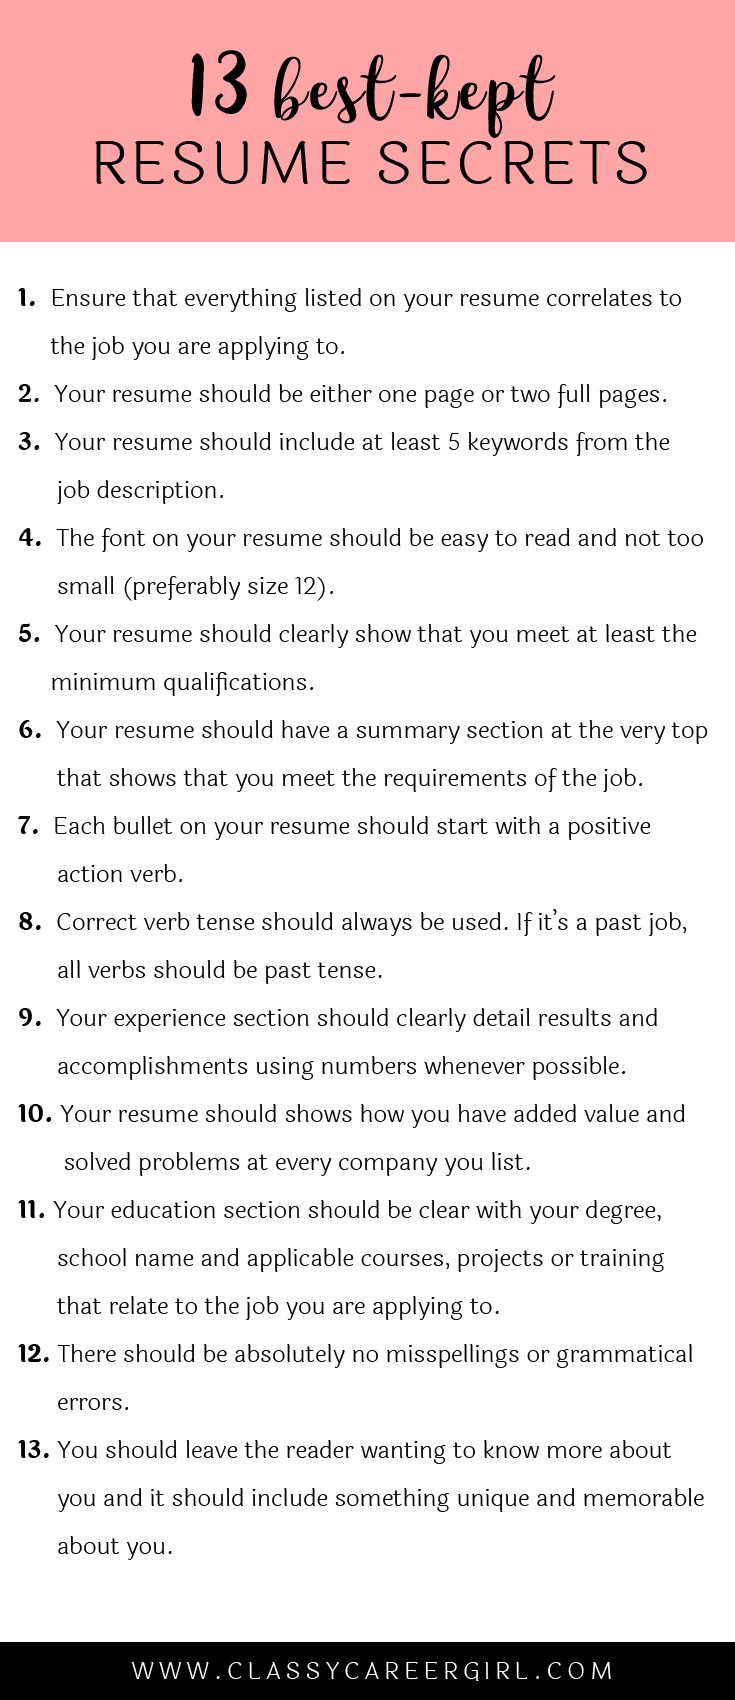 Picnictoimpeachus  Scenic  Ideas About Resume On Pinterest  Cv Format Resume Cv And  With Excellent Some Hiring Managers Will Toss Your Resume Out If You Dont Know These  With Endearing Job Description For Resume Also Free Resume Download Templates In Addition Word Templates Resume And Job Application Resume As Well As Medical Office Assistant Resume Additionally Professional Summary Resume Examples From Pinterestcom With Picnictoimpeachus  Excellent  Ideas About Resume On Pinterest  Cv Format Resume Cv And  With Endearing Some Hiring Managers Will Toss Your Resume Out If You Dont Know These  And Scenic Job Description For Resume Also Free Resume Download Templates In Addition Word Templates Resume From Pinterestcom